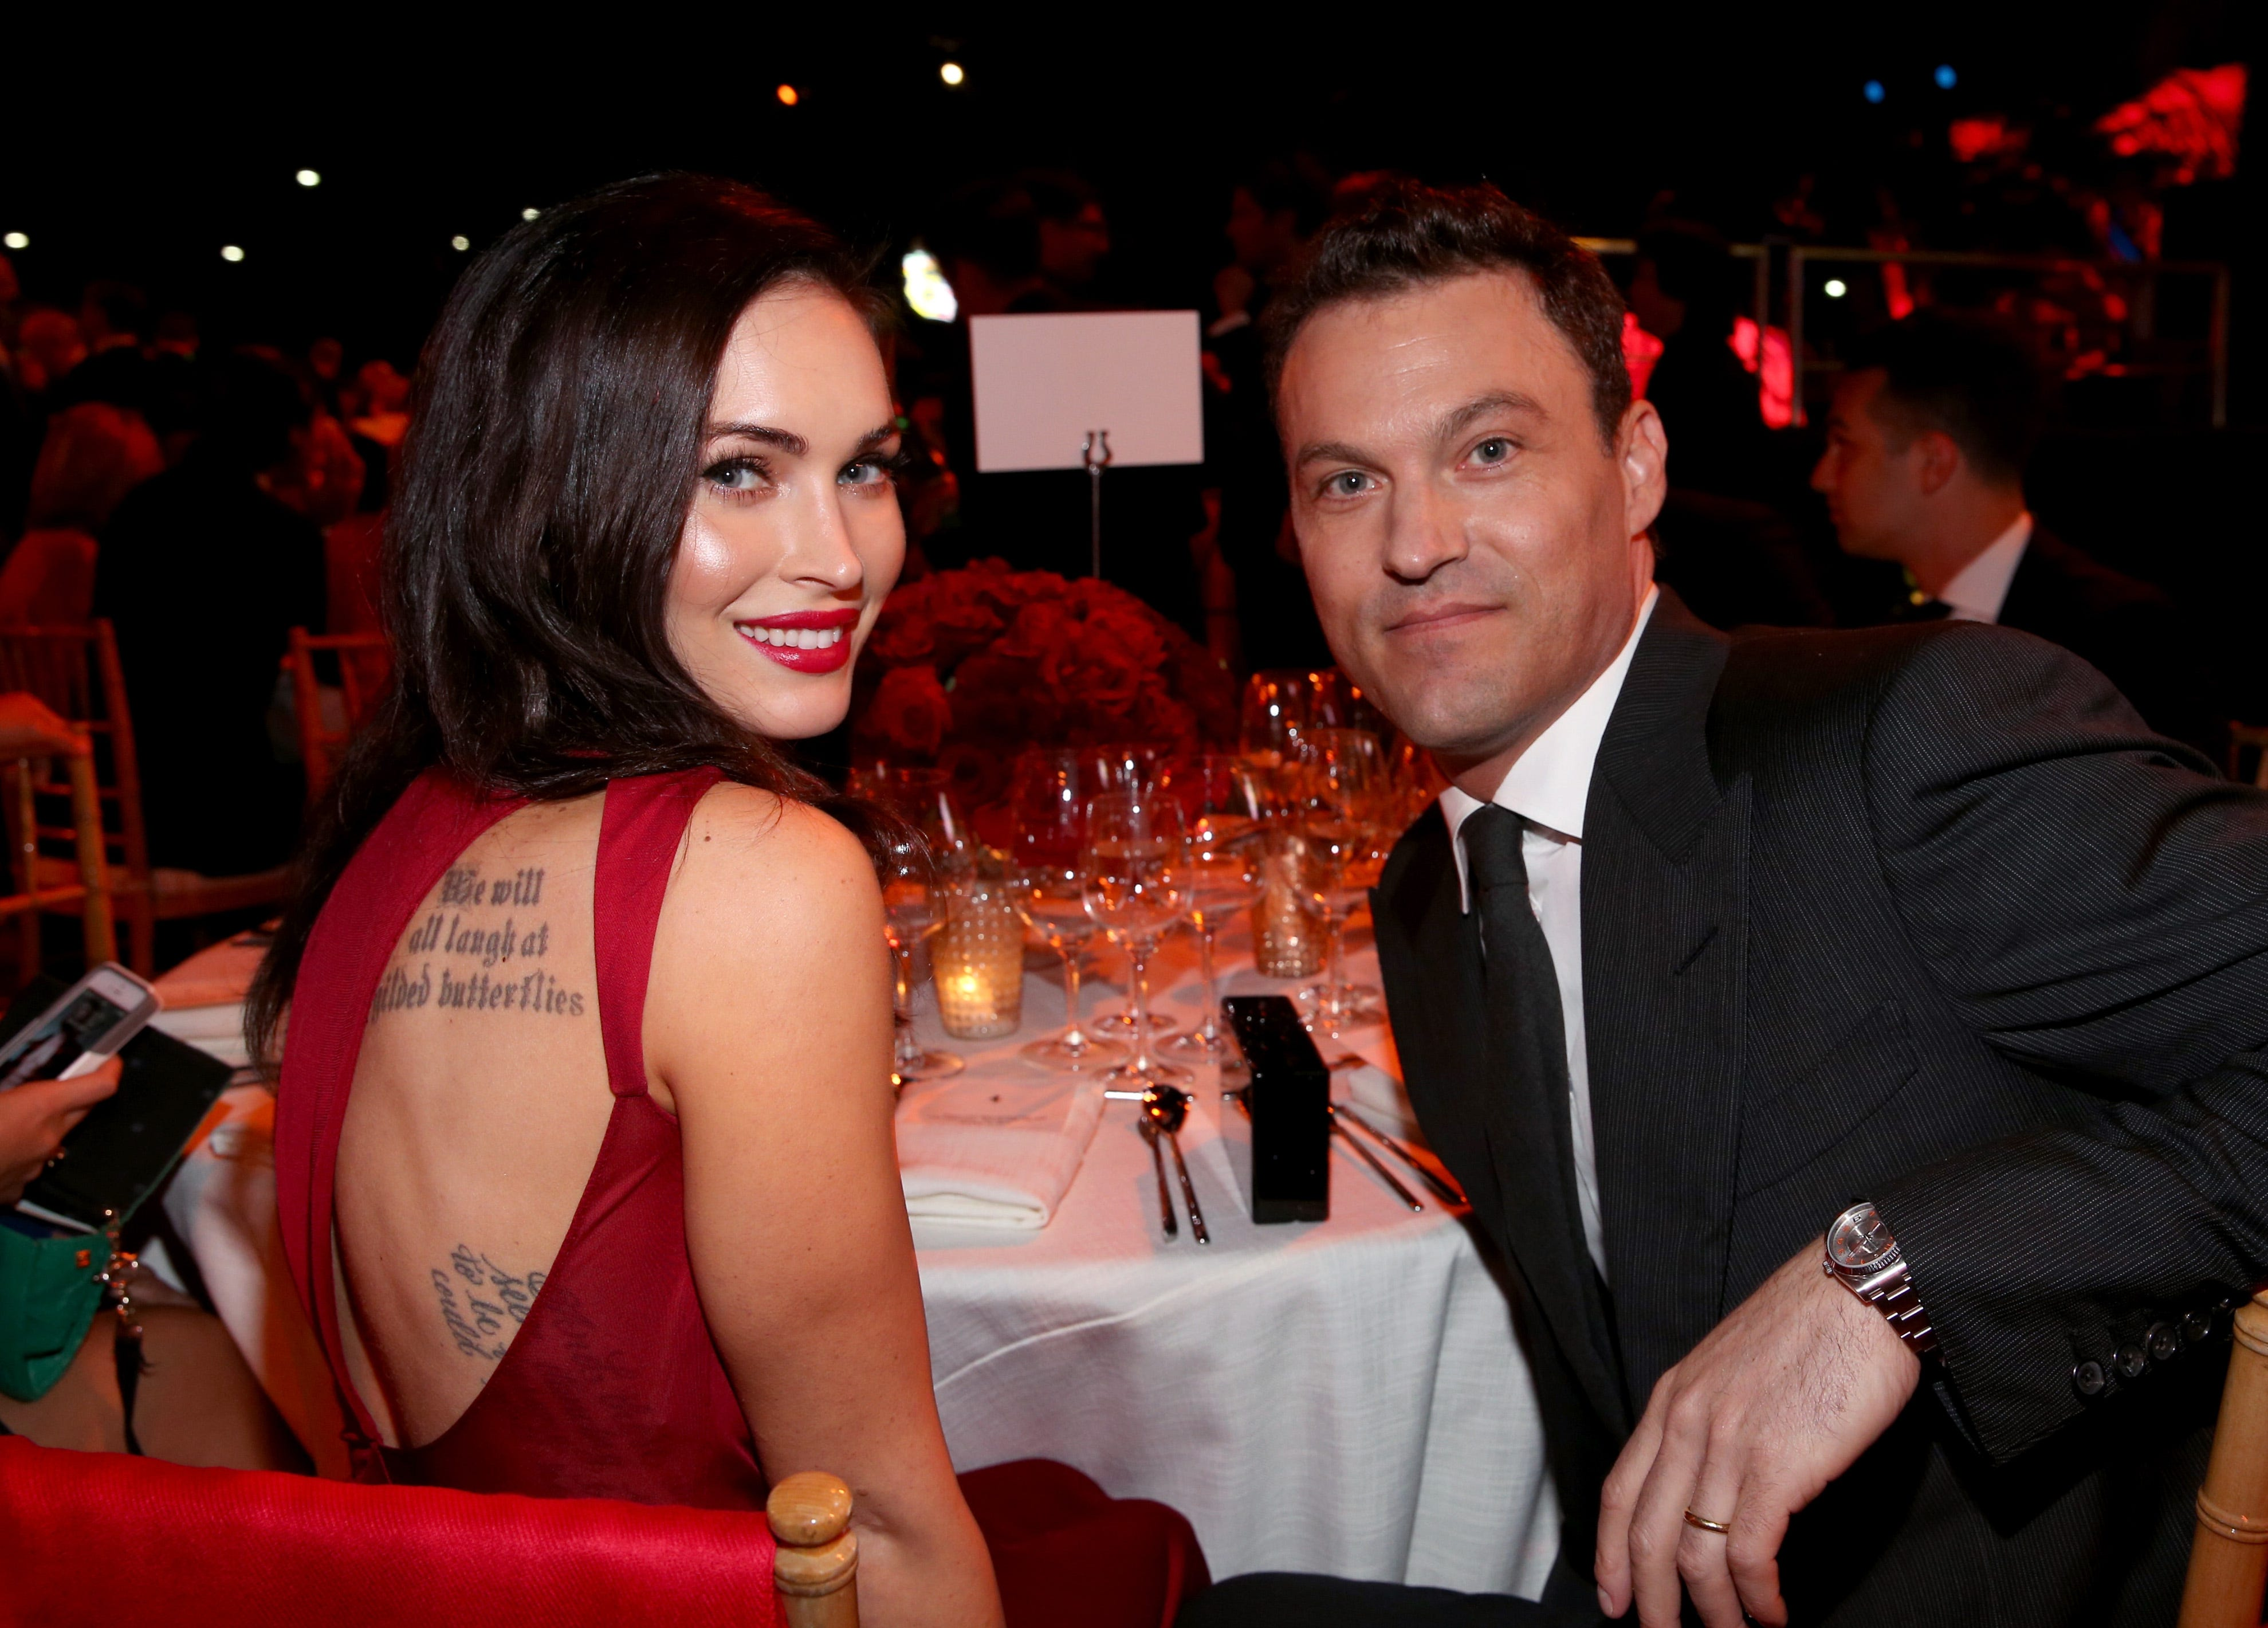 Megan Fox files for divorce from Brian Austin Green after red-carpet debut with Machine Gun Kelly: reports